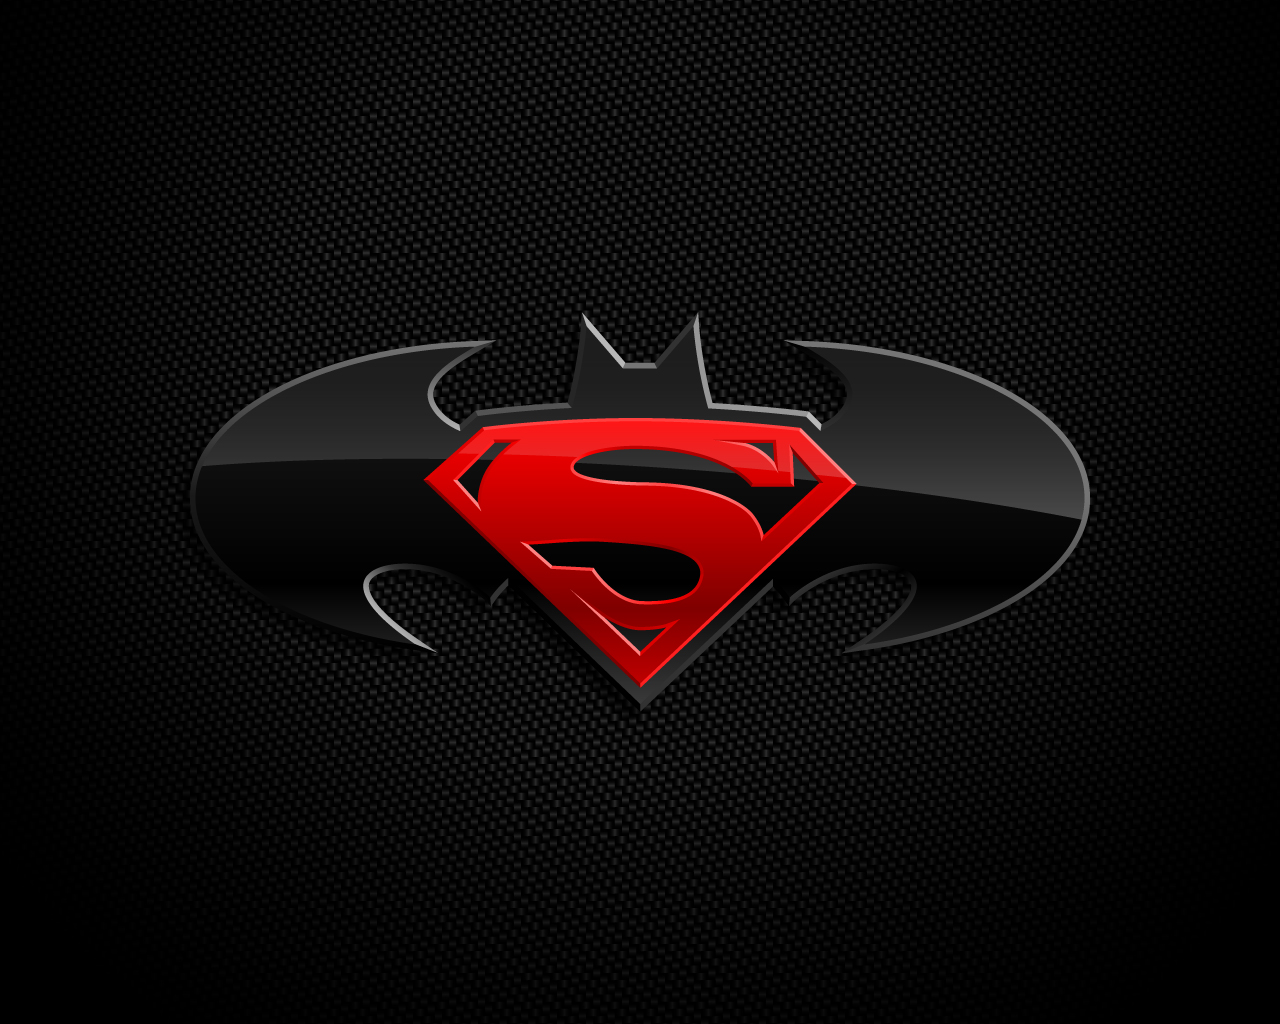 http://1.bp.blogspot.com/-Tt_YhQM_USM/TcP2DJPqGnI/AAAAAAAAASA/j0dtNSlCes8/s1600/Batman_Superman_wallpaper_by_SpazChicken.jpg